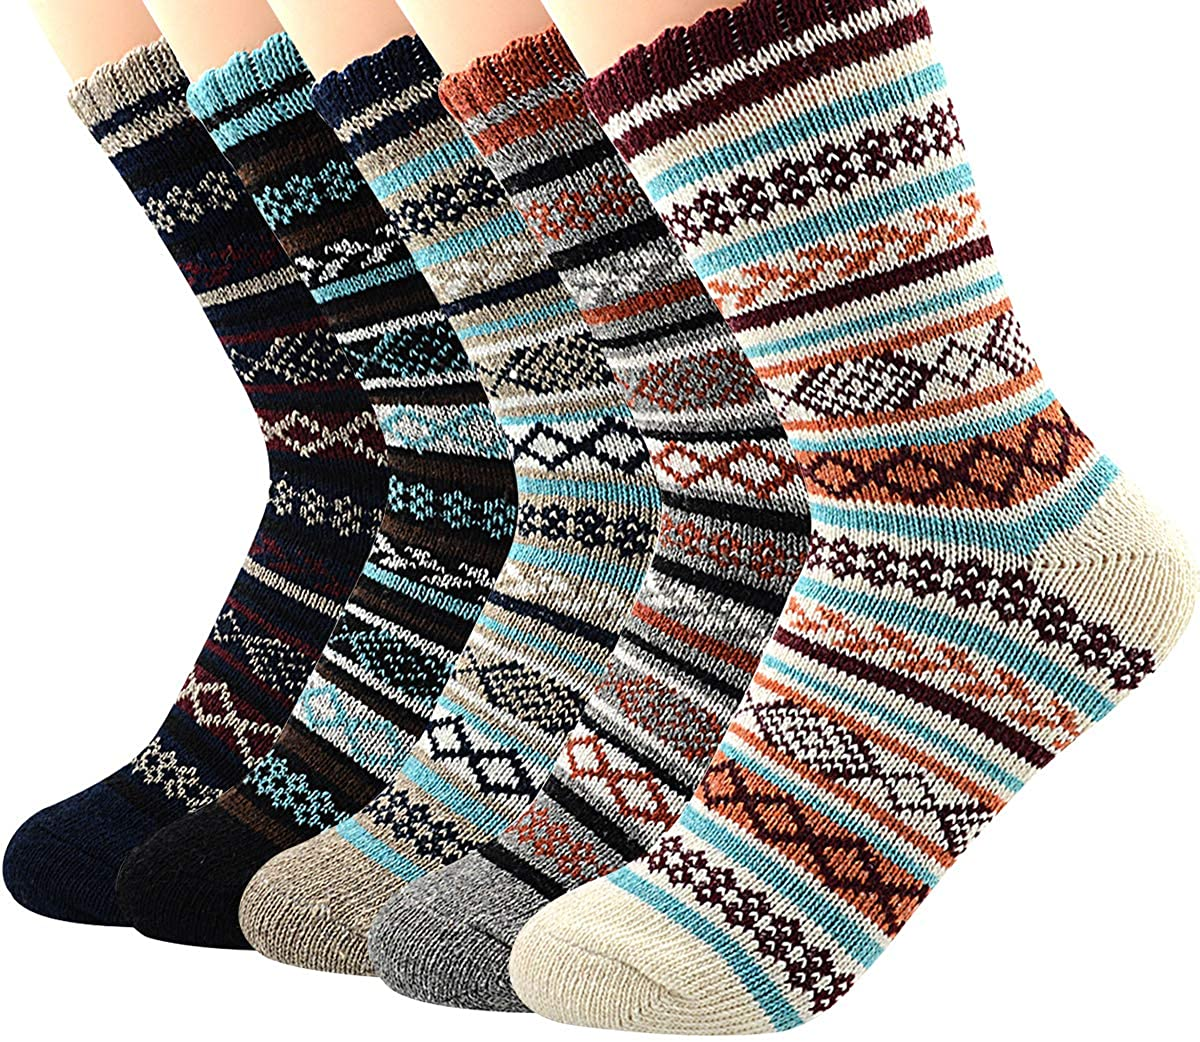 Century Star Womens Vintage Winter Soft Wool Warm Comfort Cozy Crew Socks 5 Pack